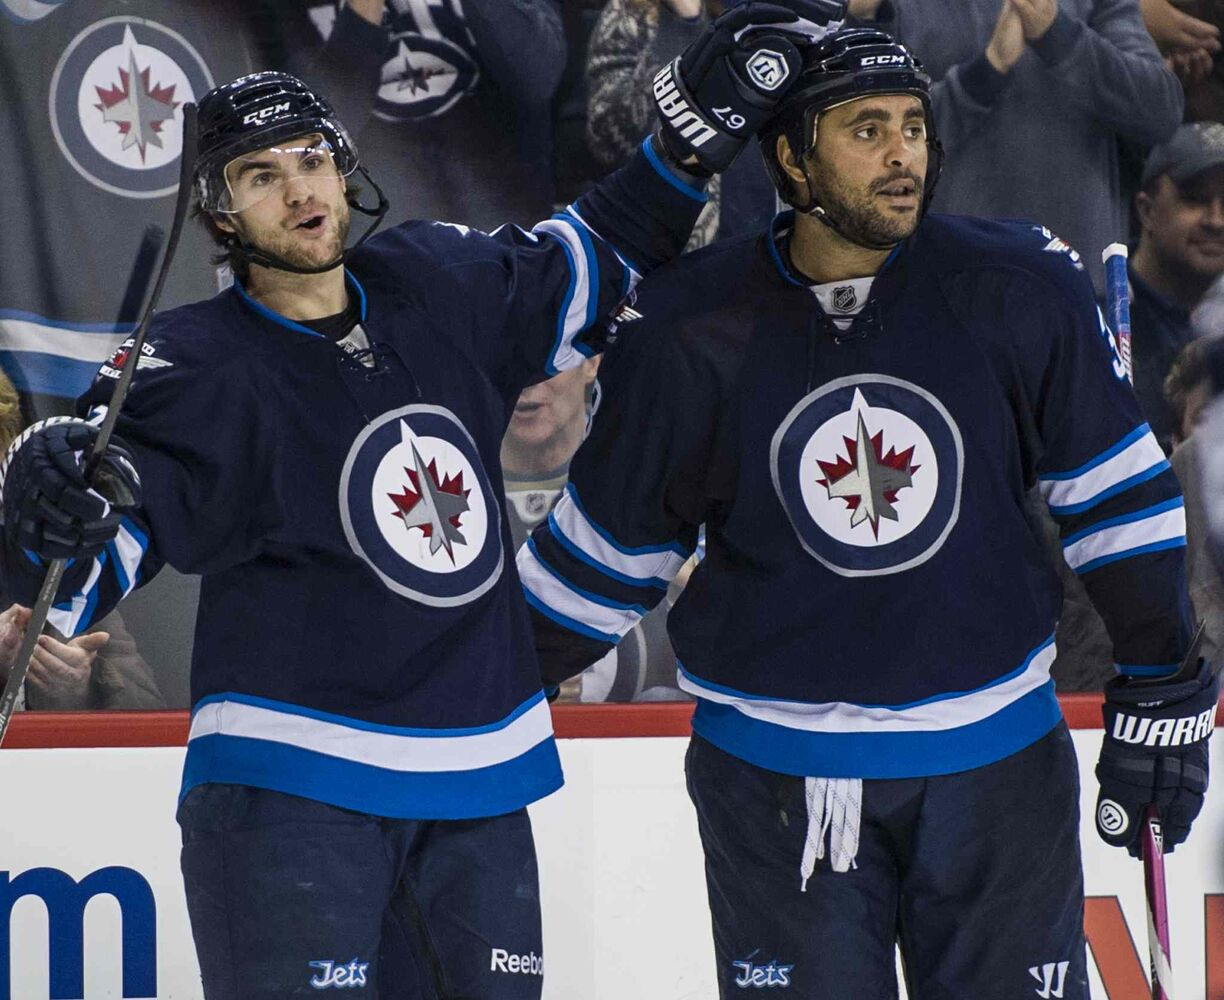 Winnipeg Jets Michael Frolik (#67) celebrates his second period goal against the Florida Panthers with teammate Dustin Byfuglien (#33). (DAVID LIPNOWSKI / WINNIPEG FREE PRESS )